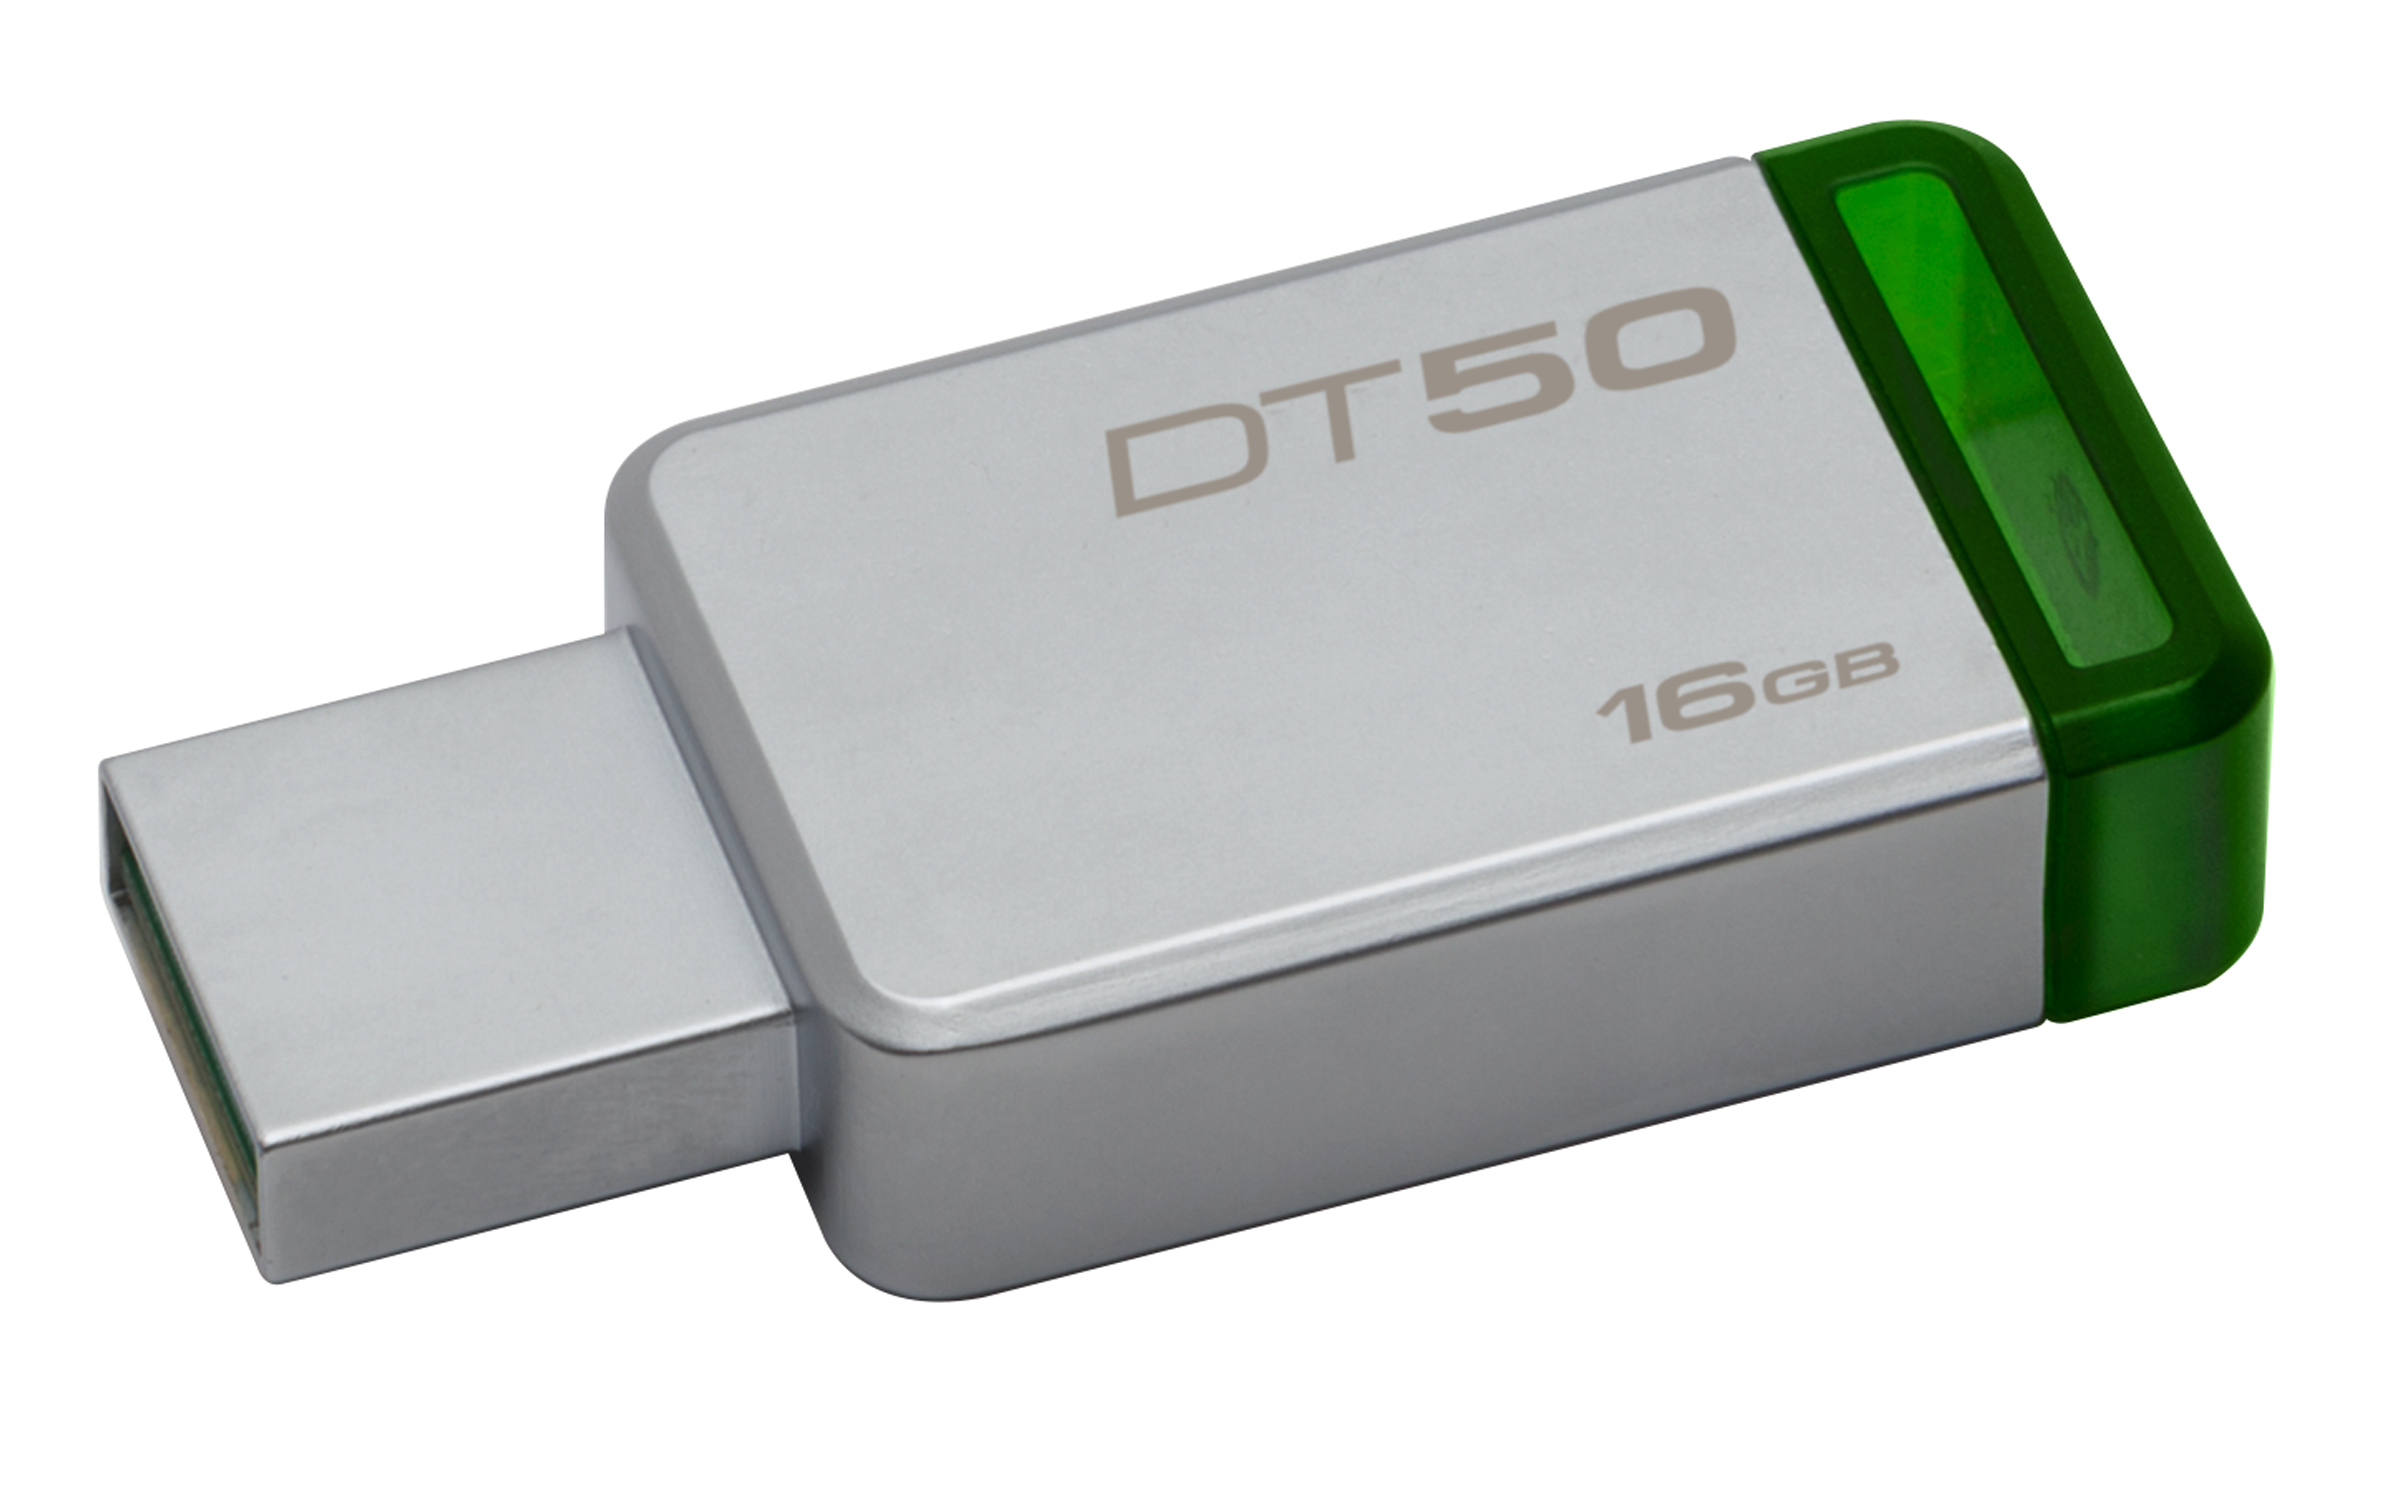 Kingston USB3.0 Stick 16GB  DataTraveler 50 green